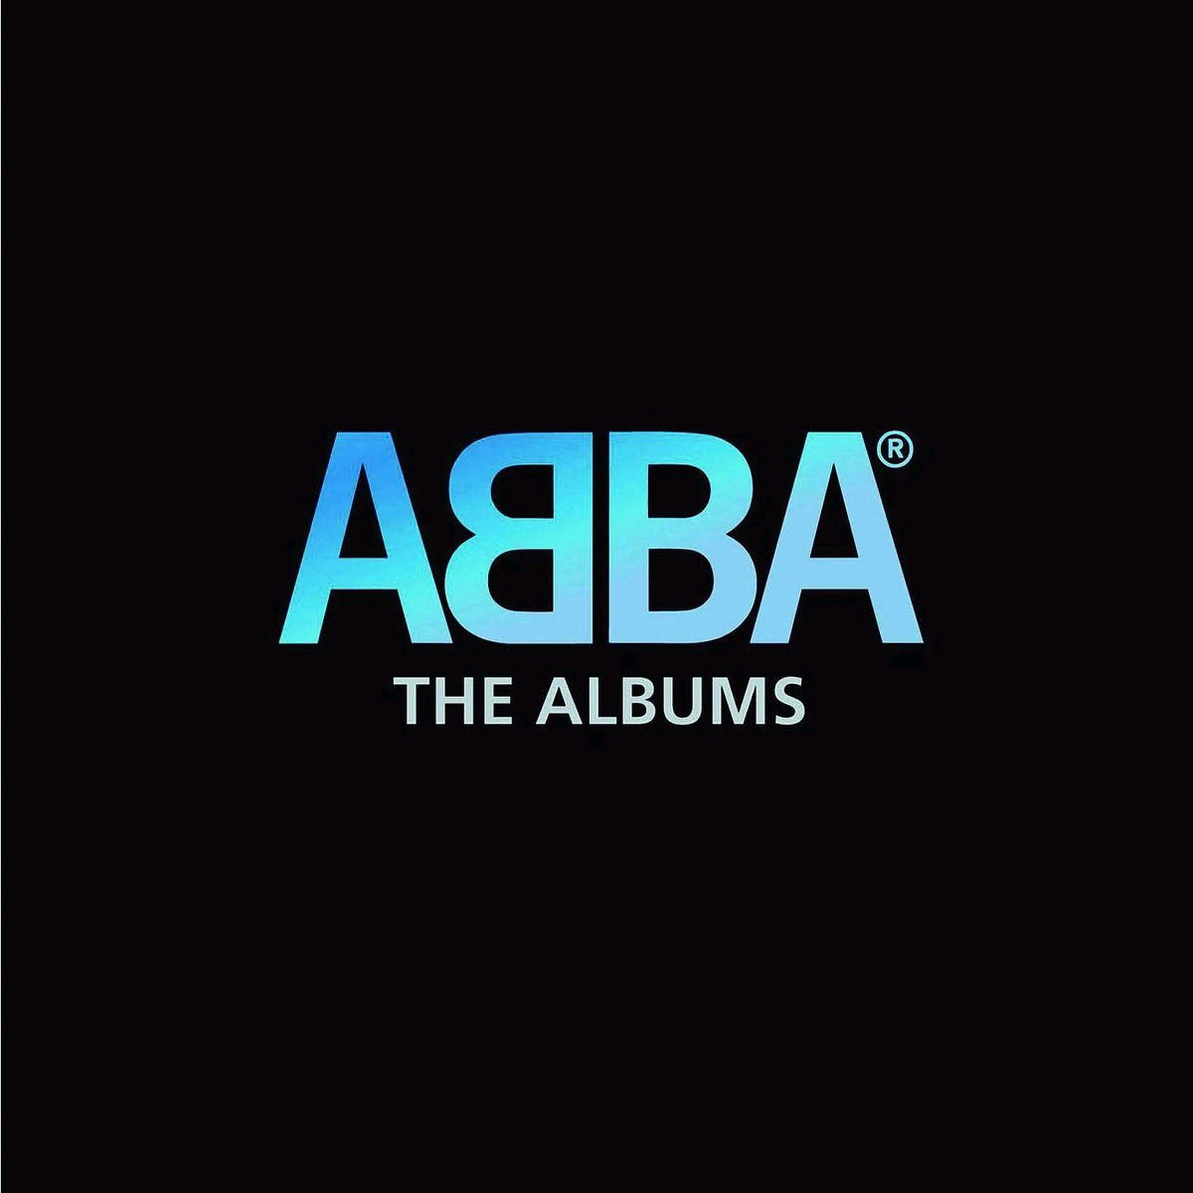 Abba - The Albums [9 CDs]